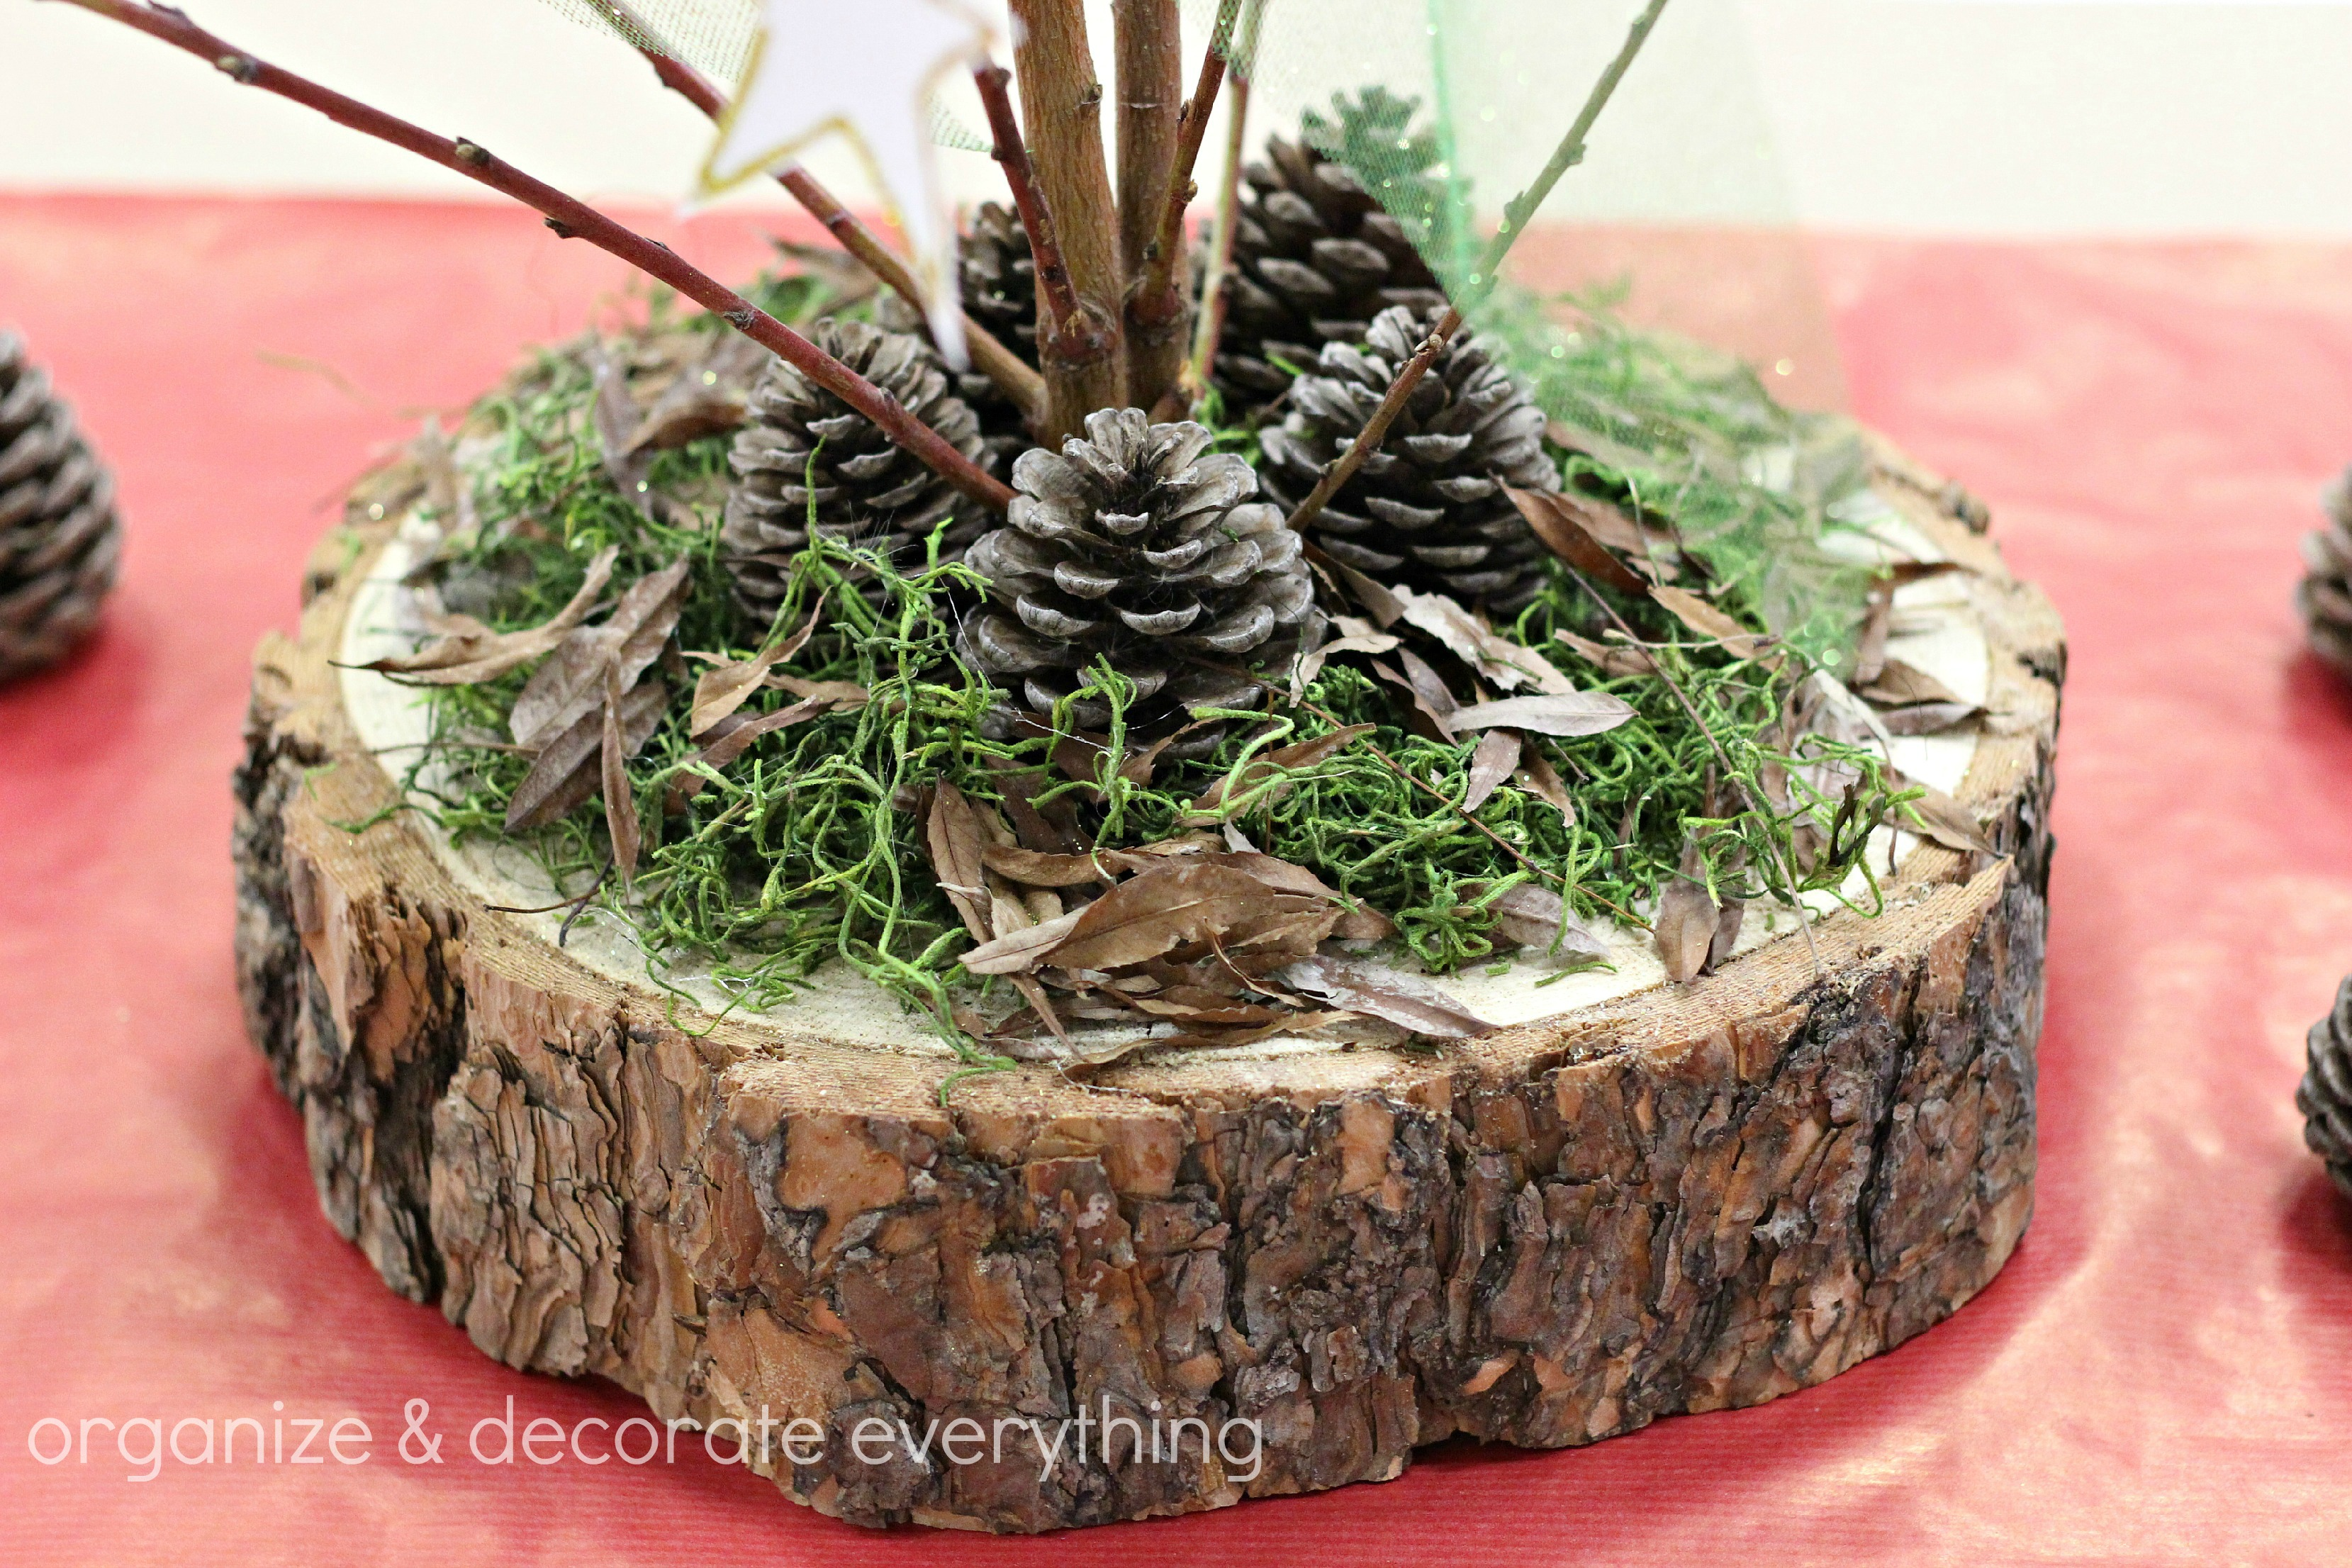 Trunk Slice And Branch Natural Centerpiece 6.1